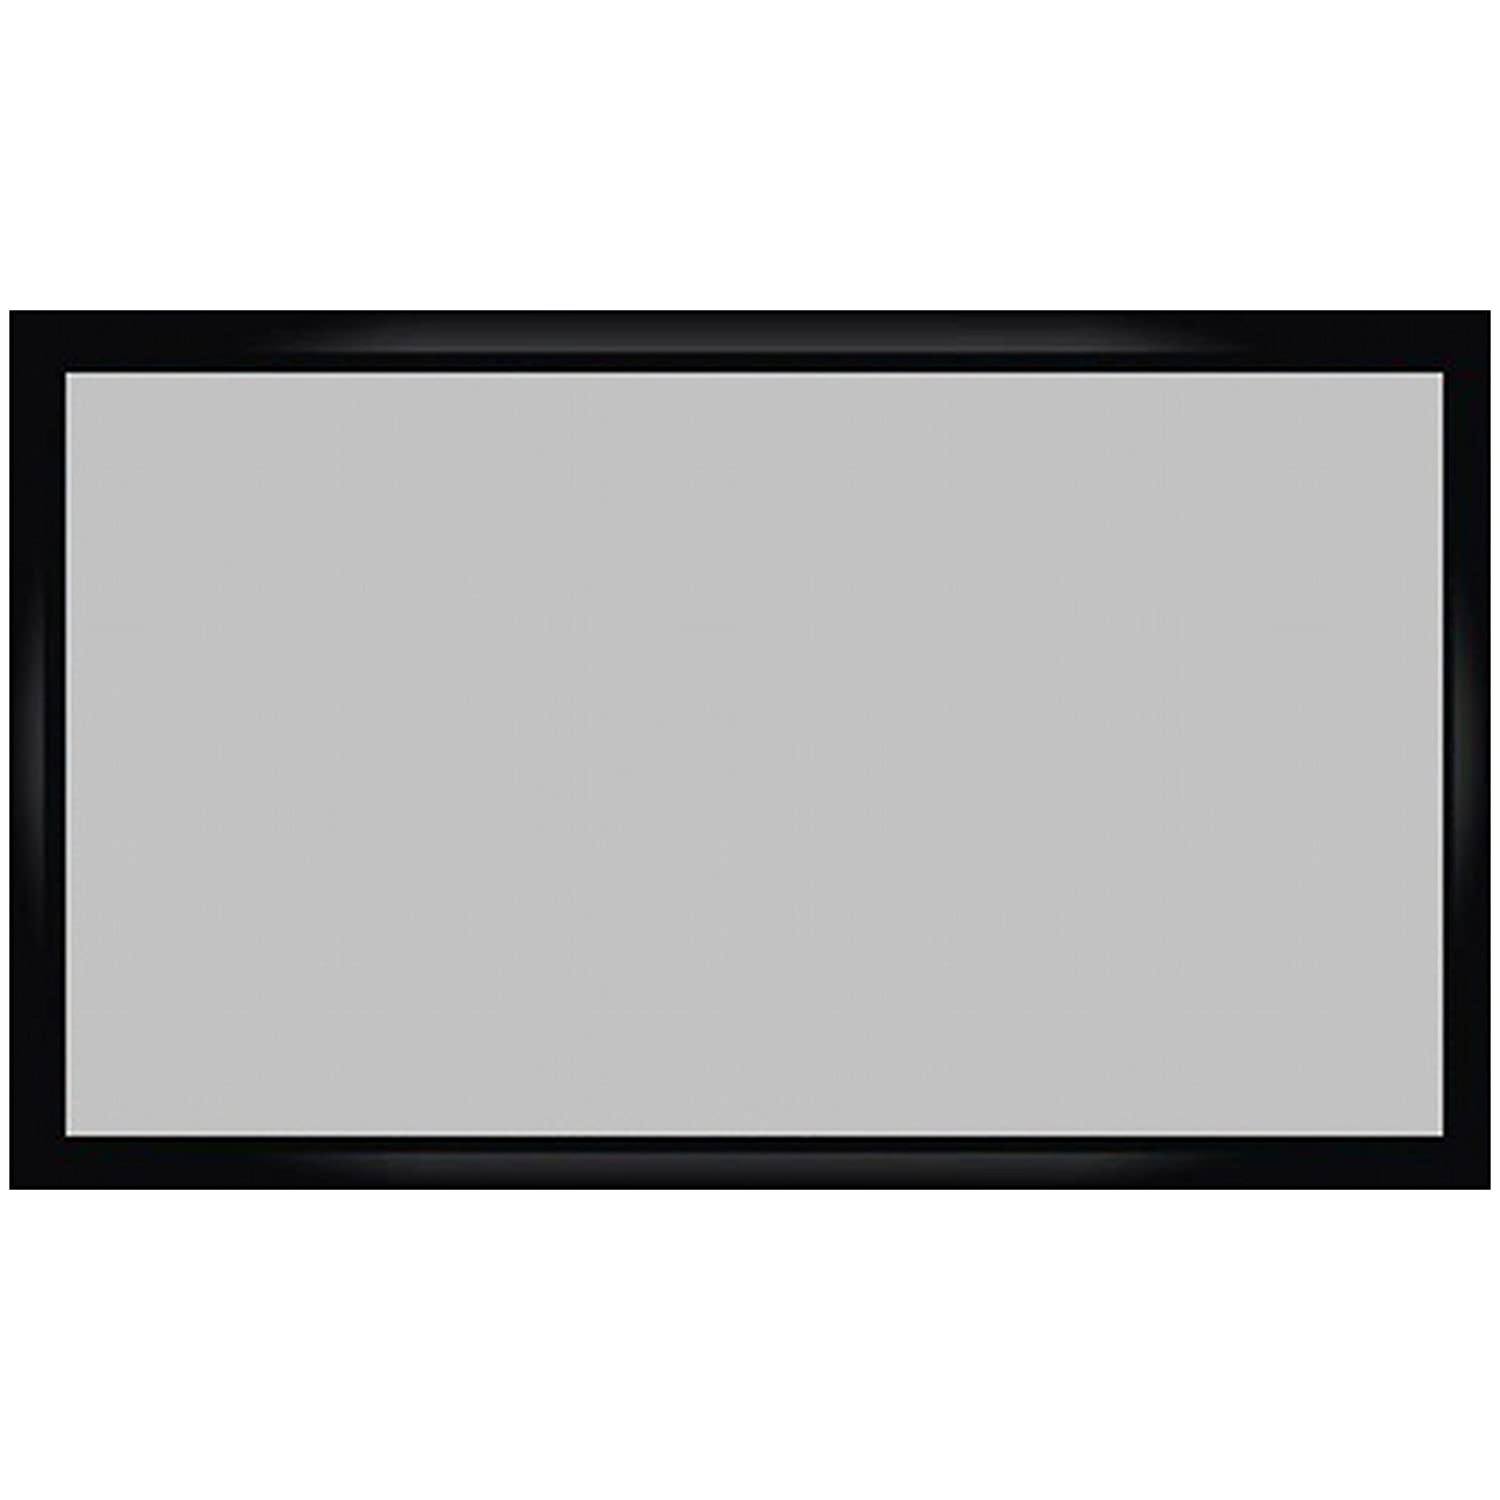 Antra 16:9 Fixed Projector Projection Screen (6-PC Frame) PVC Material 3D HD Compatible for Home Theatre Office Presentation (16:9 92', Matt Grey) PSF-92JAG